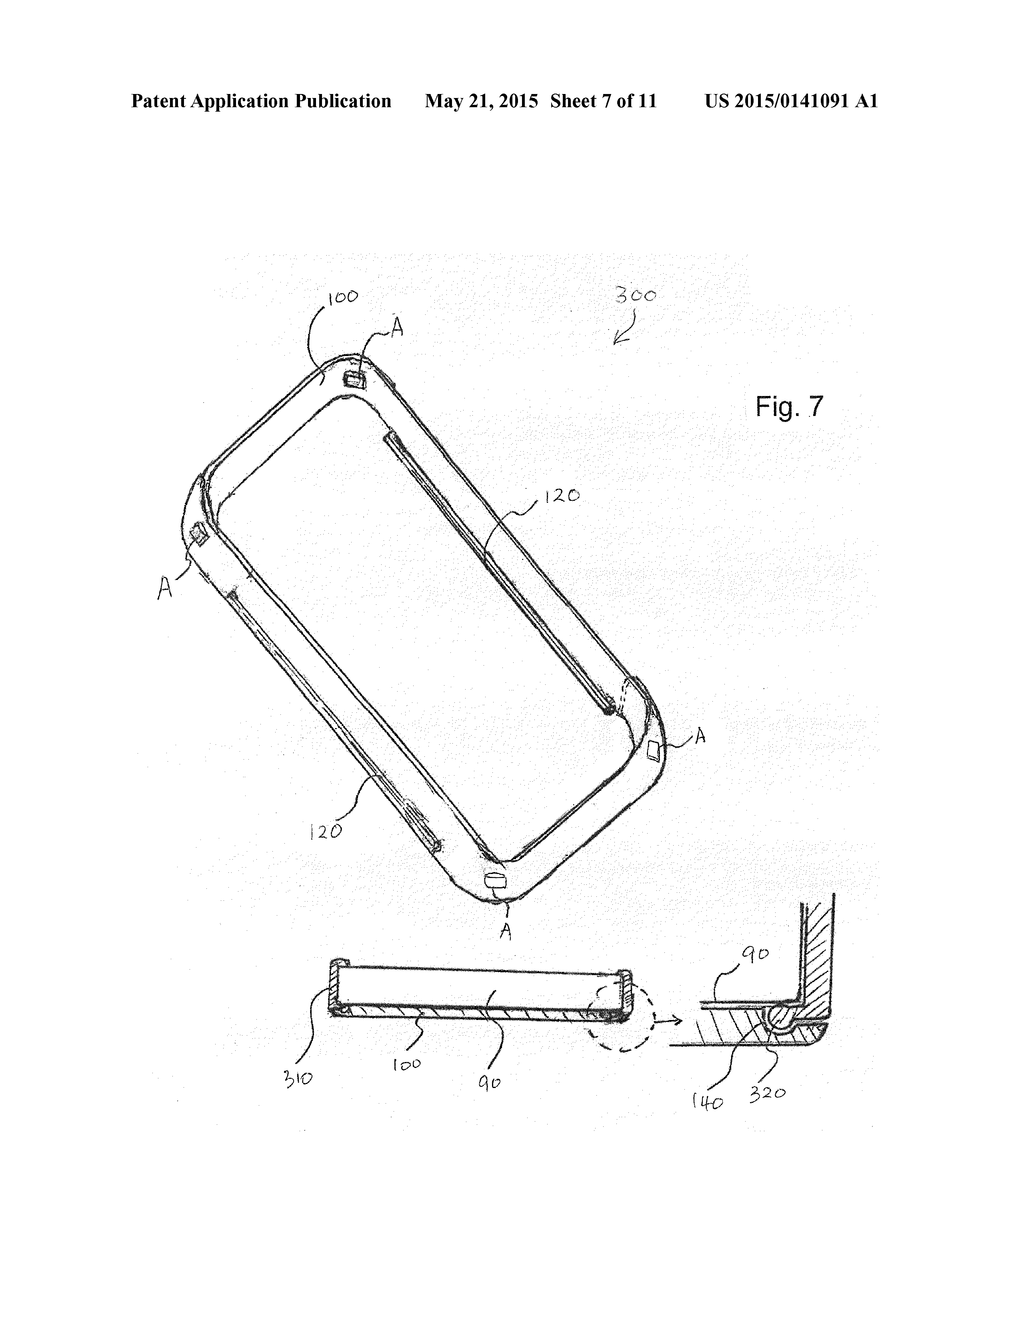 hight resolution of detachable front flip cover for cell phone case diagram schematic and image 08